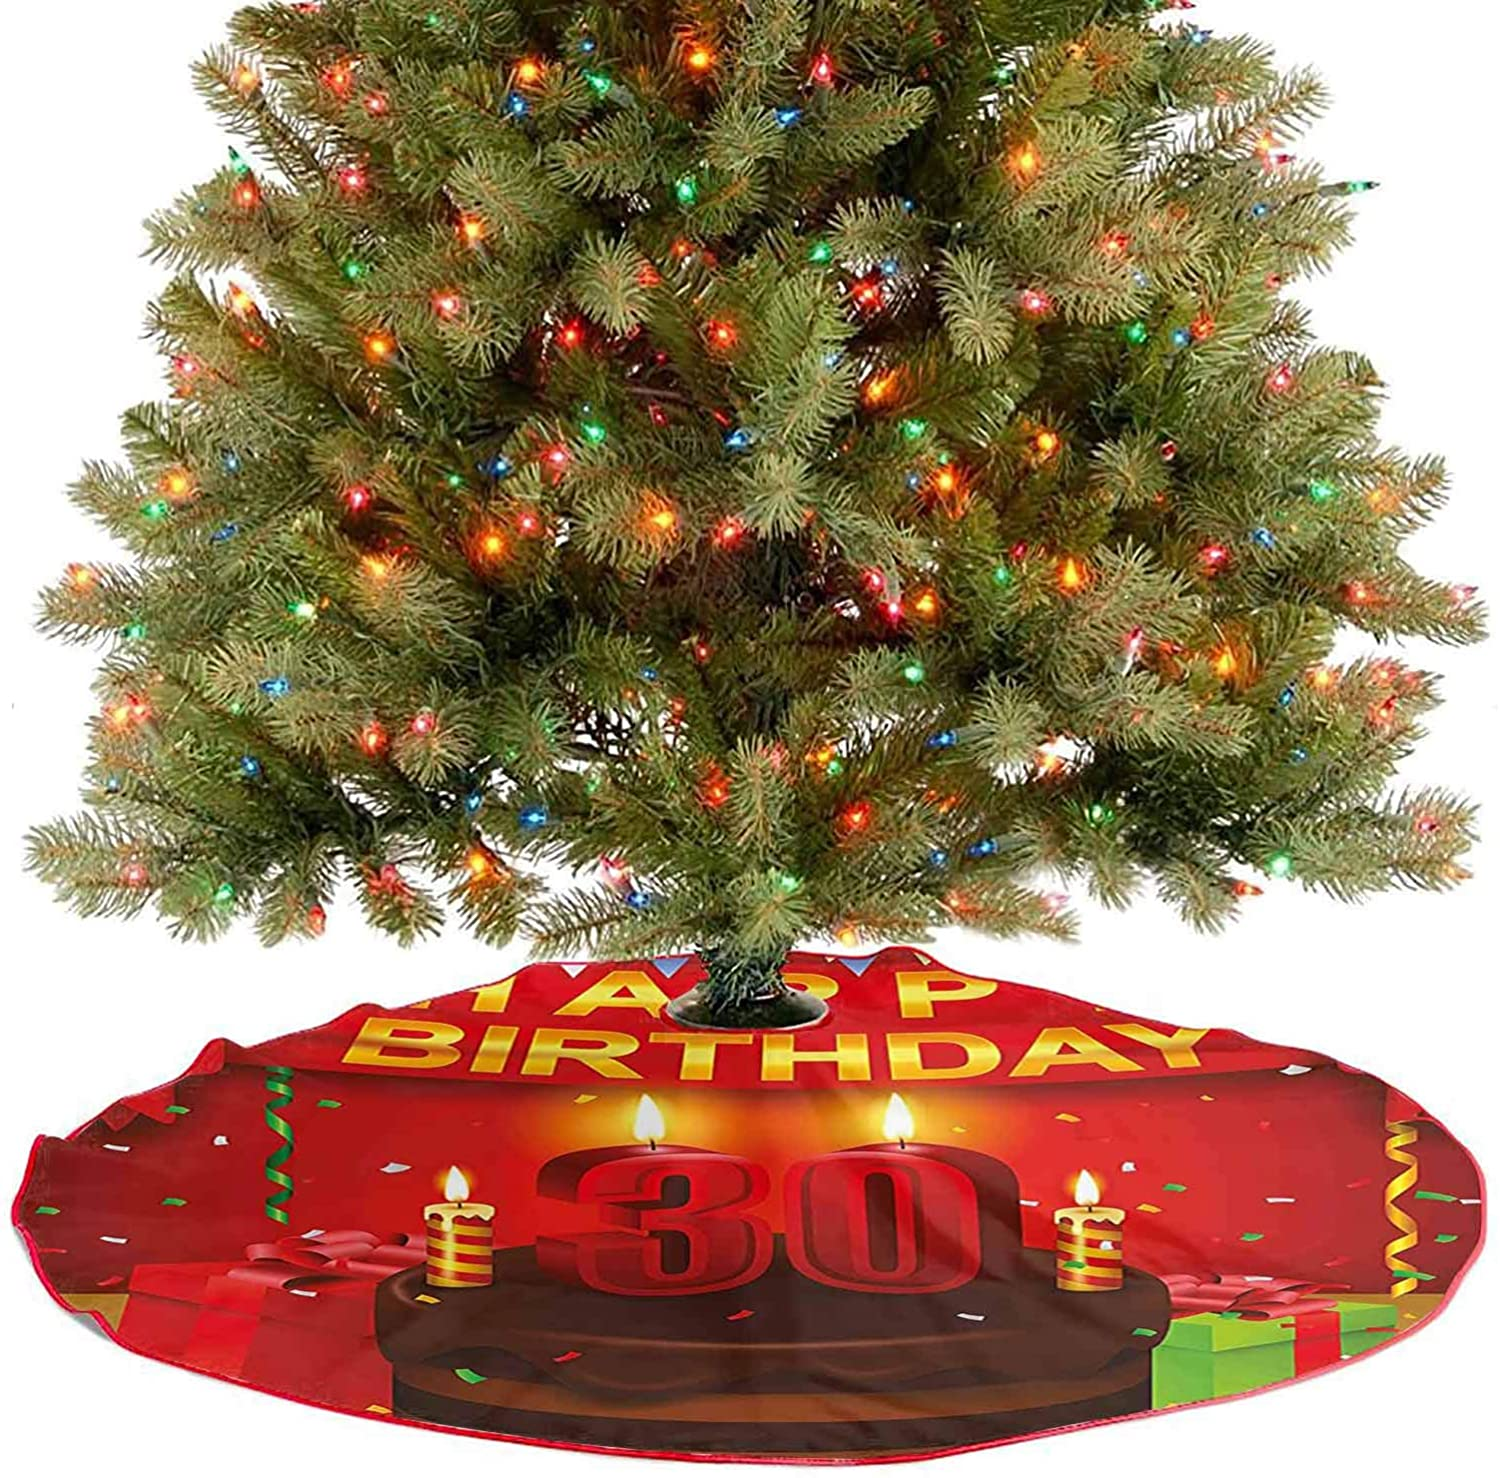 Adorise Tassel Christmas Tree Skirt Celebration with Chocolate Cream Cake Colorful Flags and Gifts Holiday Party Tree Mat Perfect for Your Holiday Decor - 48 Inch